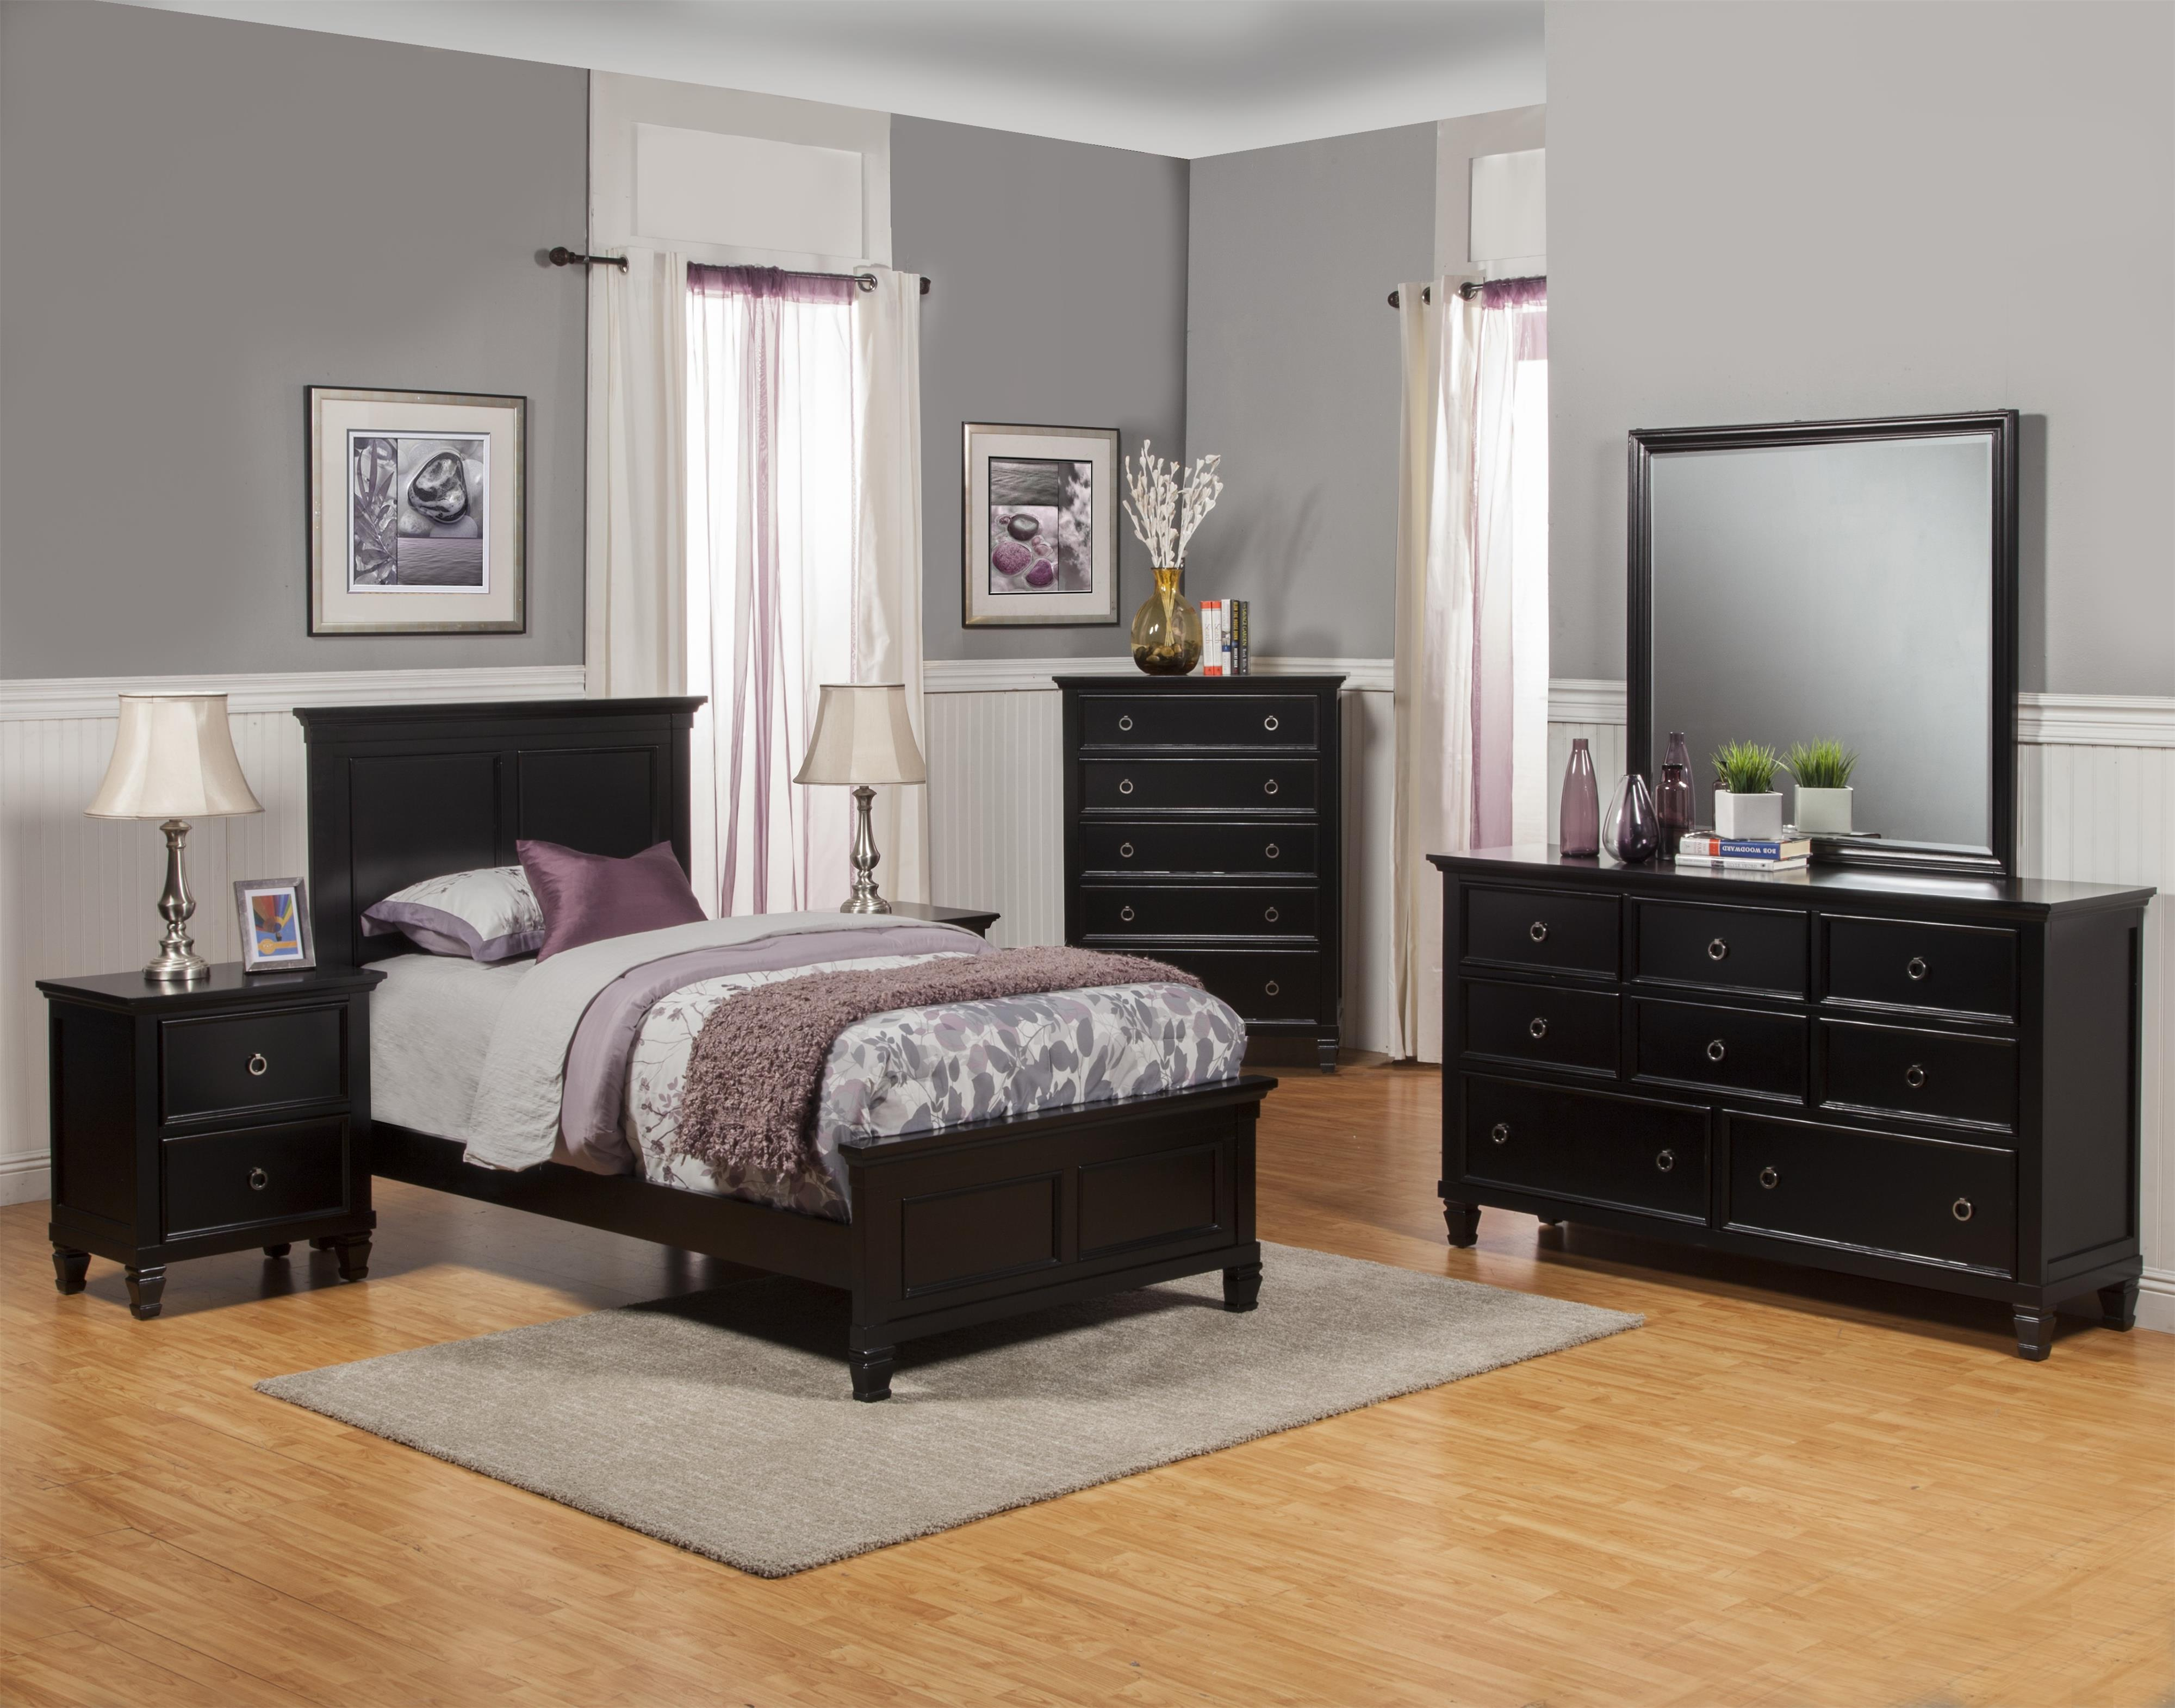 New Classic Tamarack Twin Bedroom Group - Item Number: 045 T Bedroom Group 1